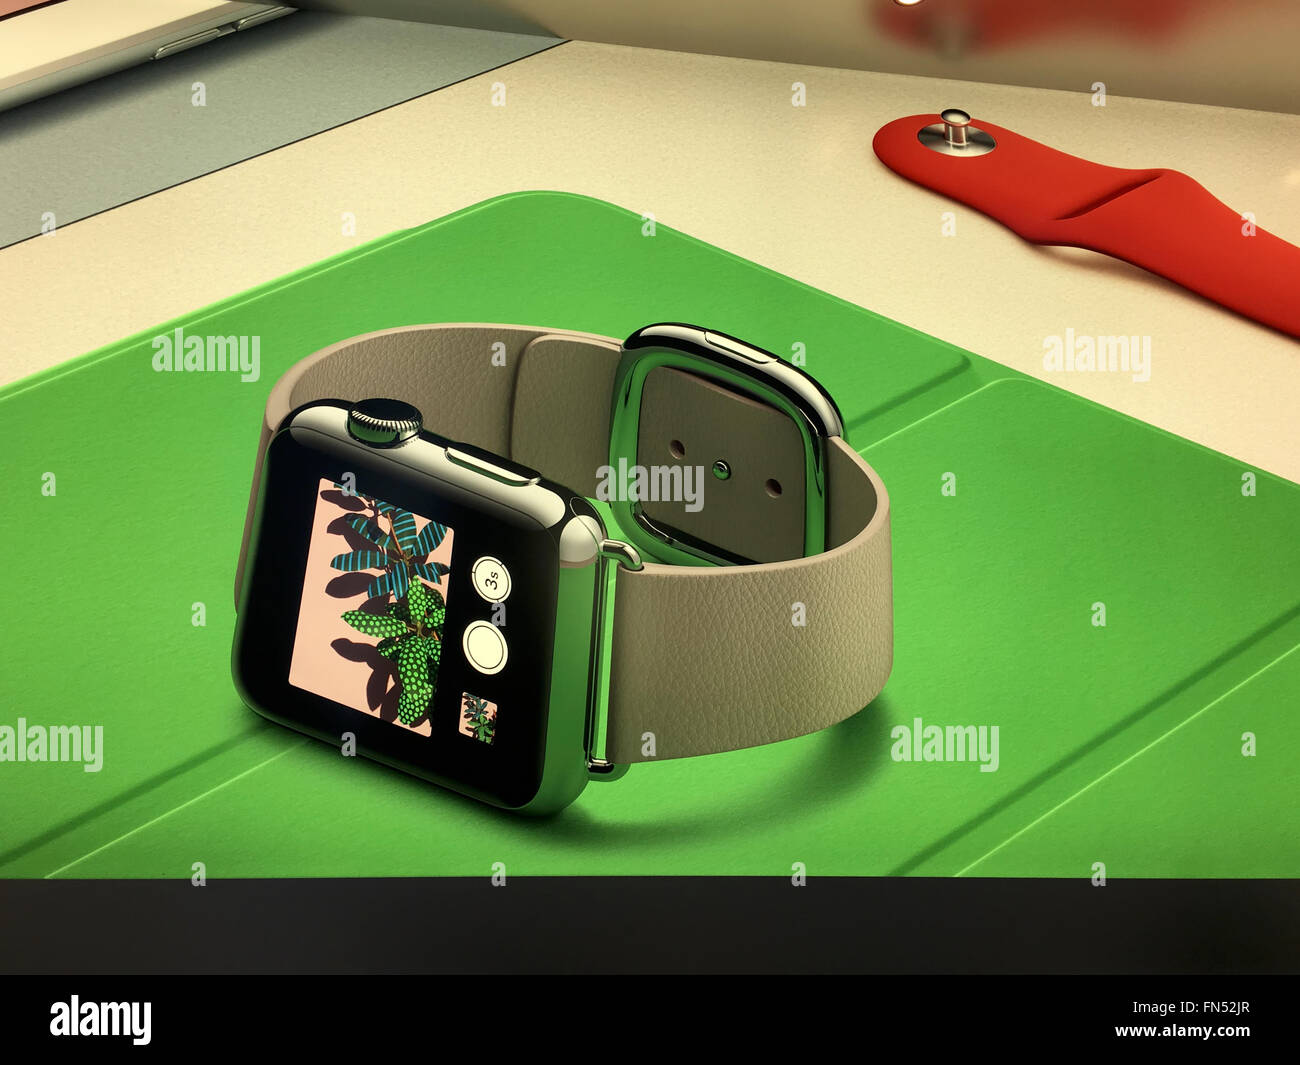 New York, New York City, USA  NEW YORK,  UNITED STATES AMERICA - FEB 23 2016: New Apple Watch smartwatch displaying - Stock Image